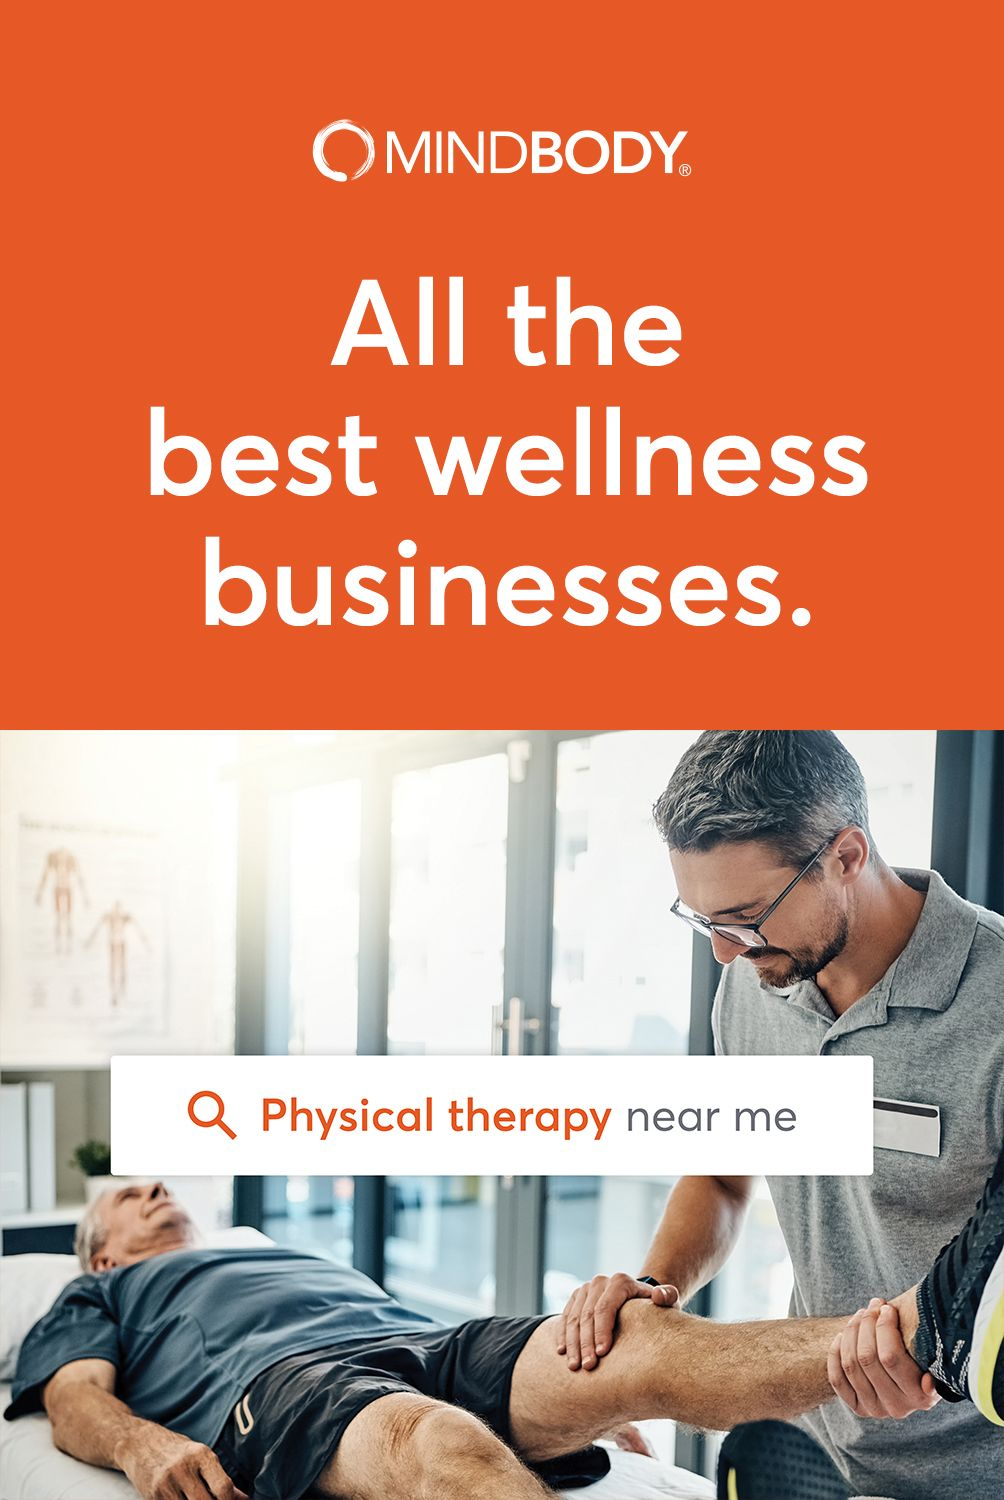 Ready to list your wellness business on the MINDBODY app